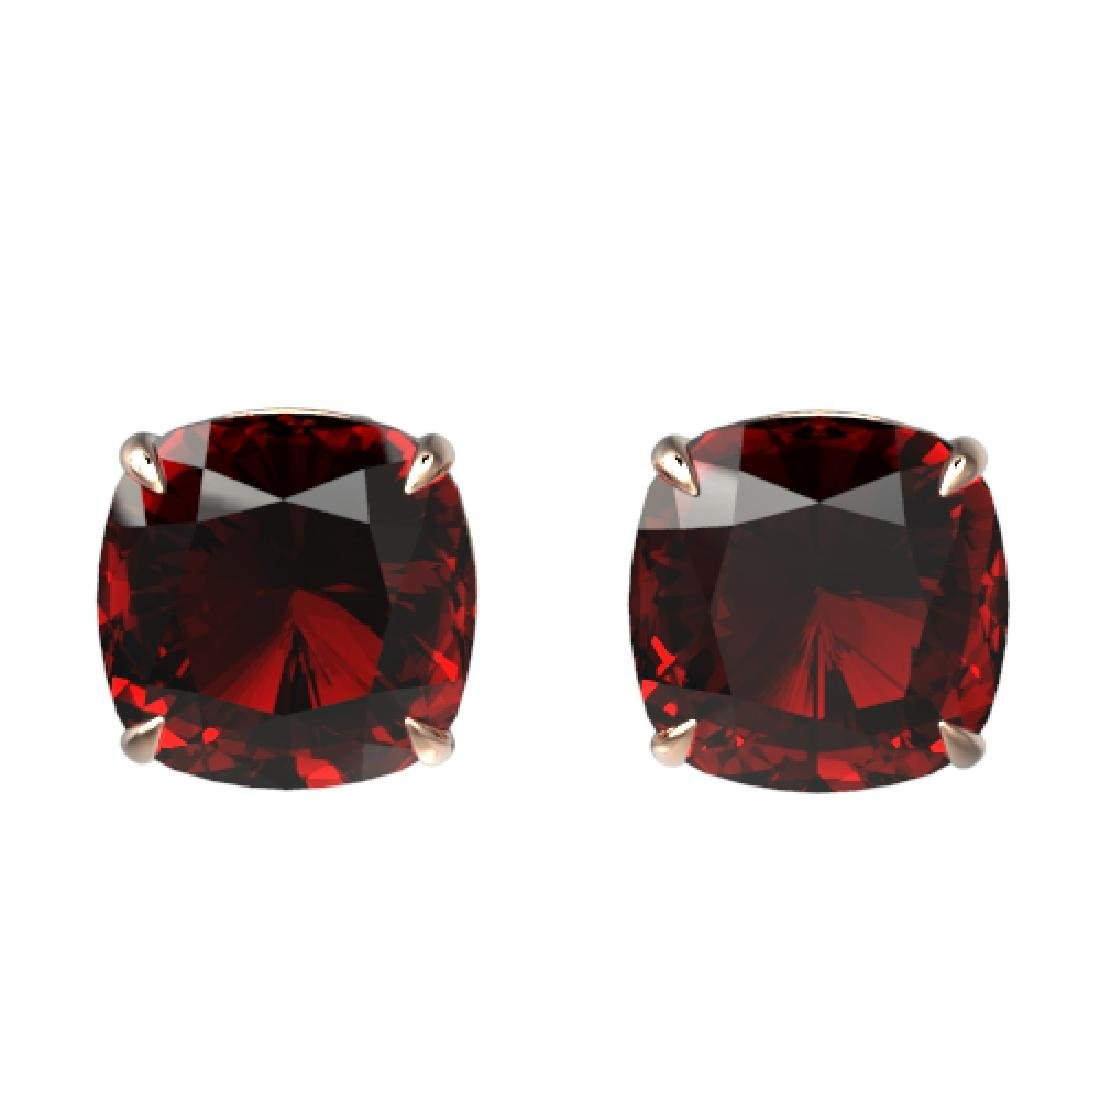 12 CTW Cushion Cut Garnet Designer Solitaire Stud